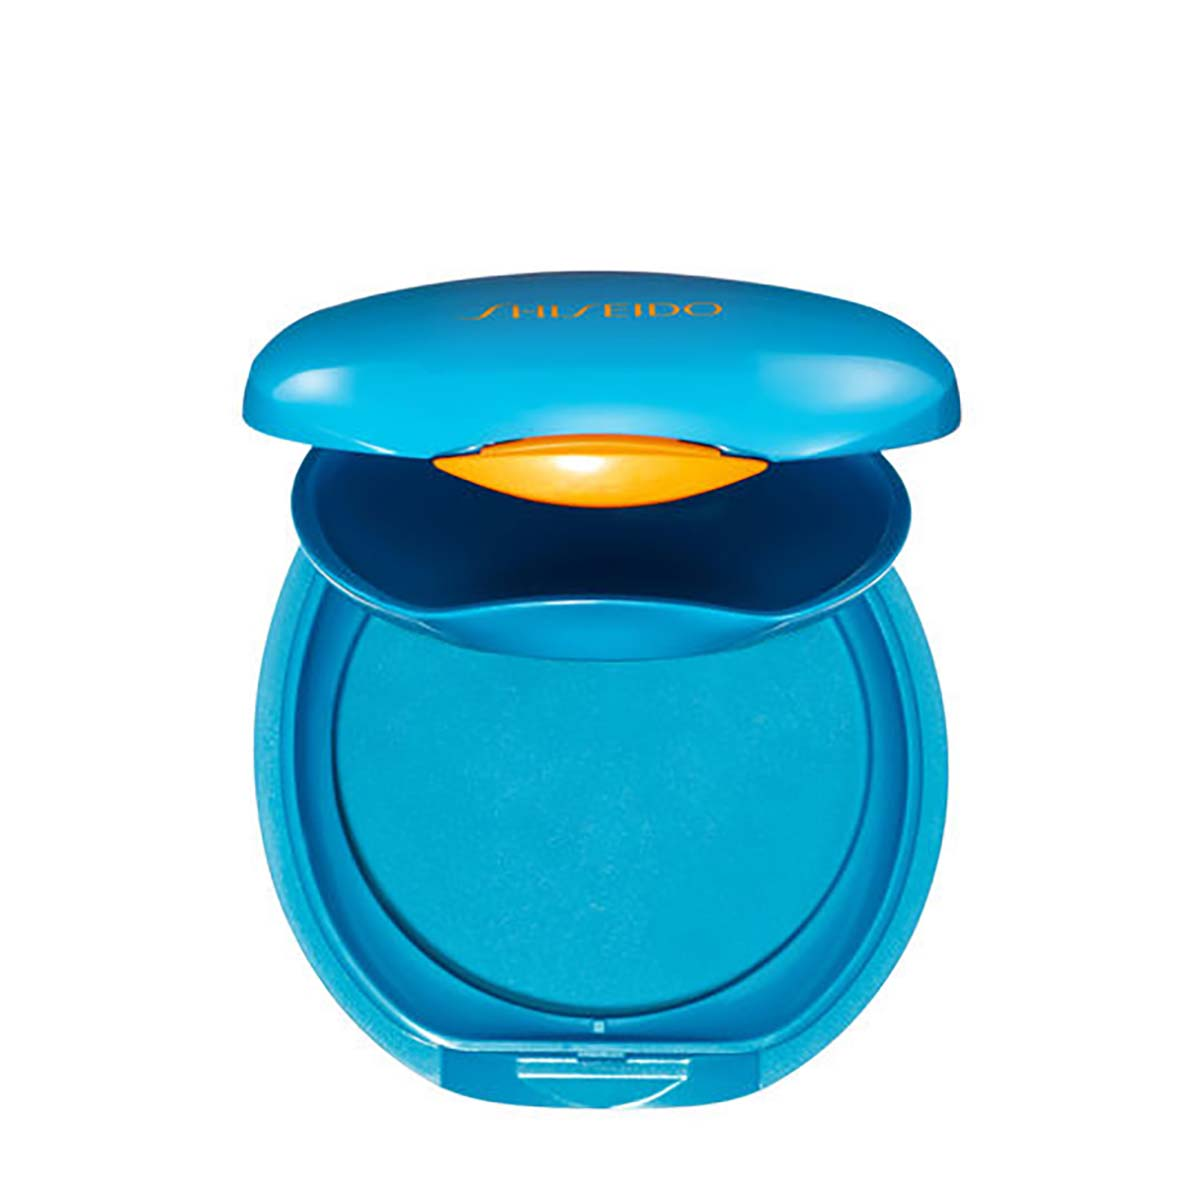 SUN CASE FOR COMPACT FOUNDATION